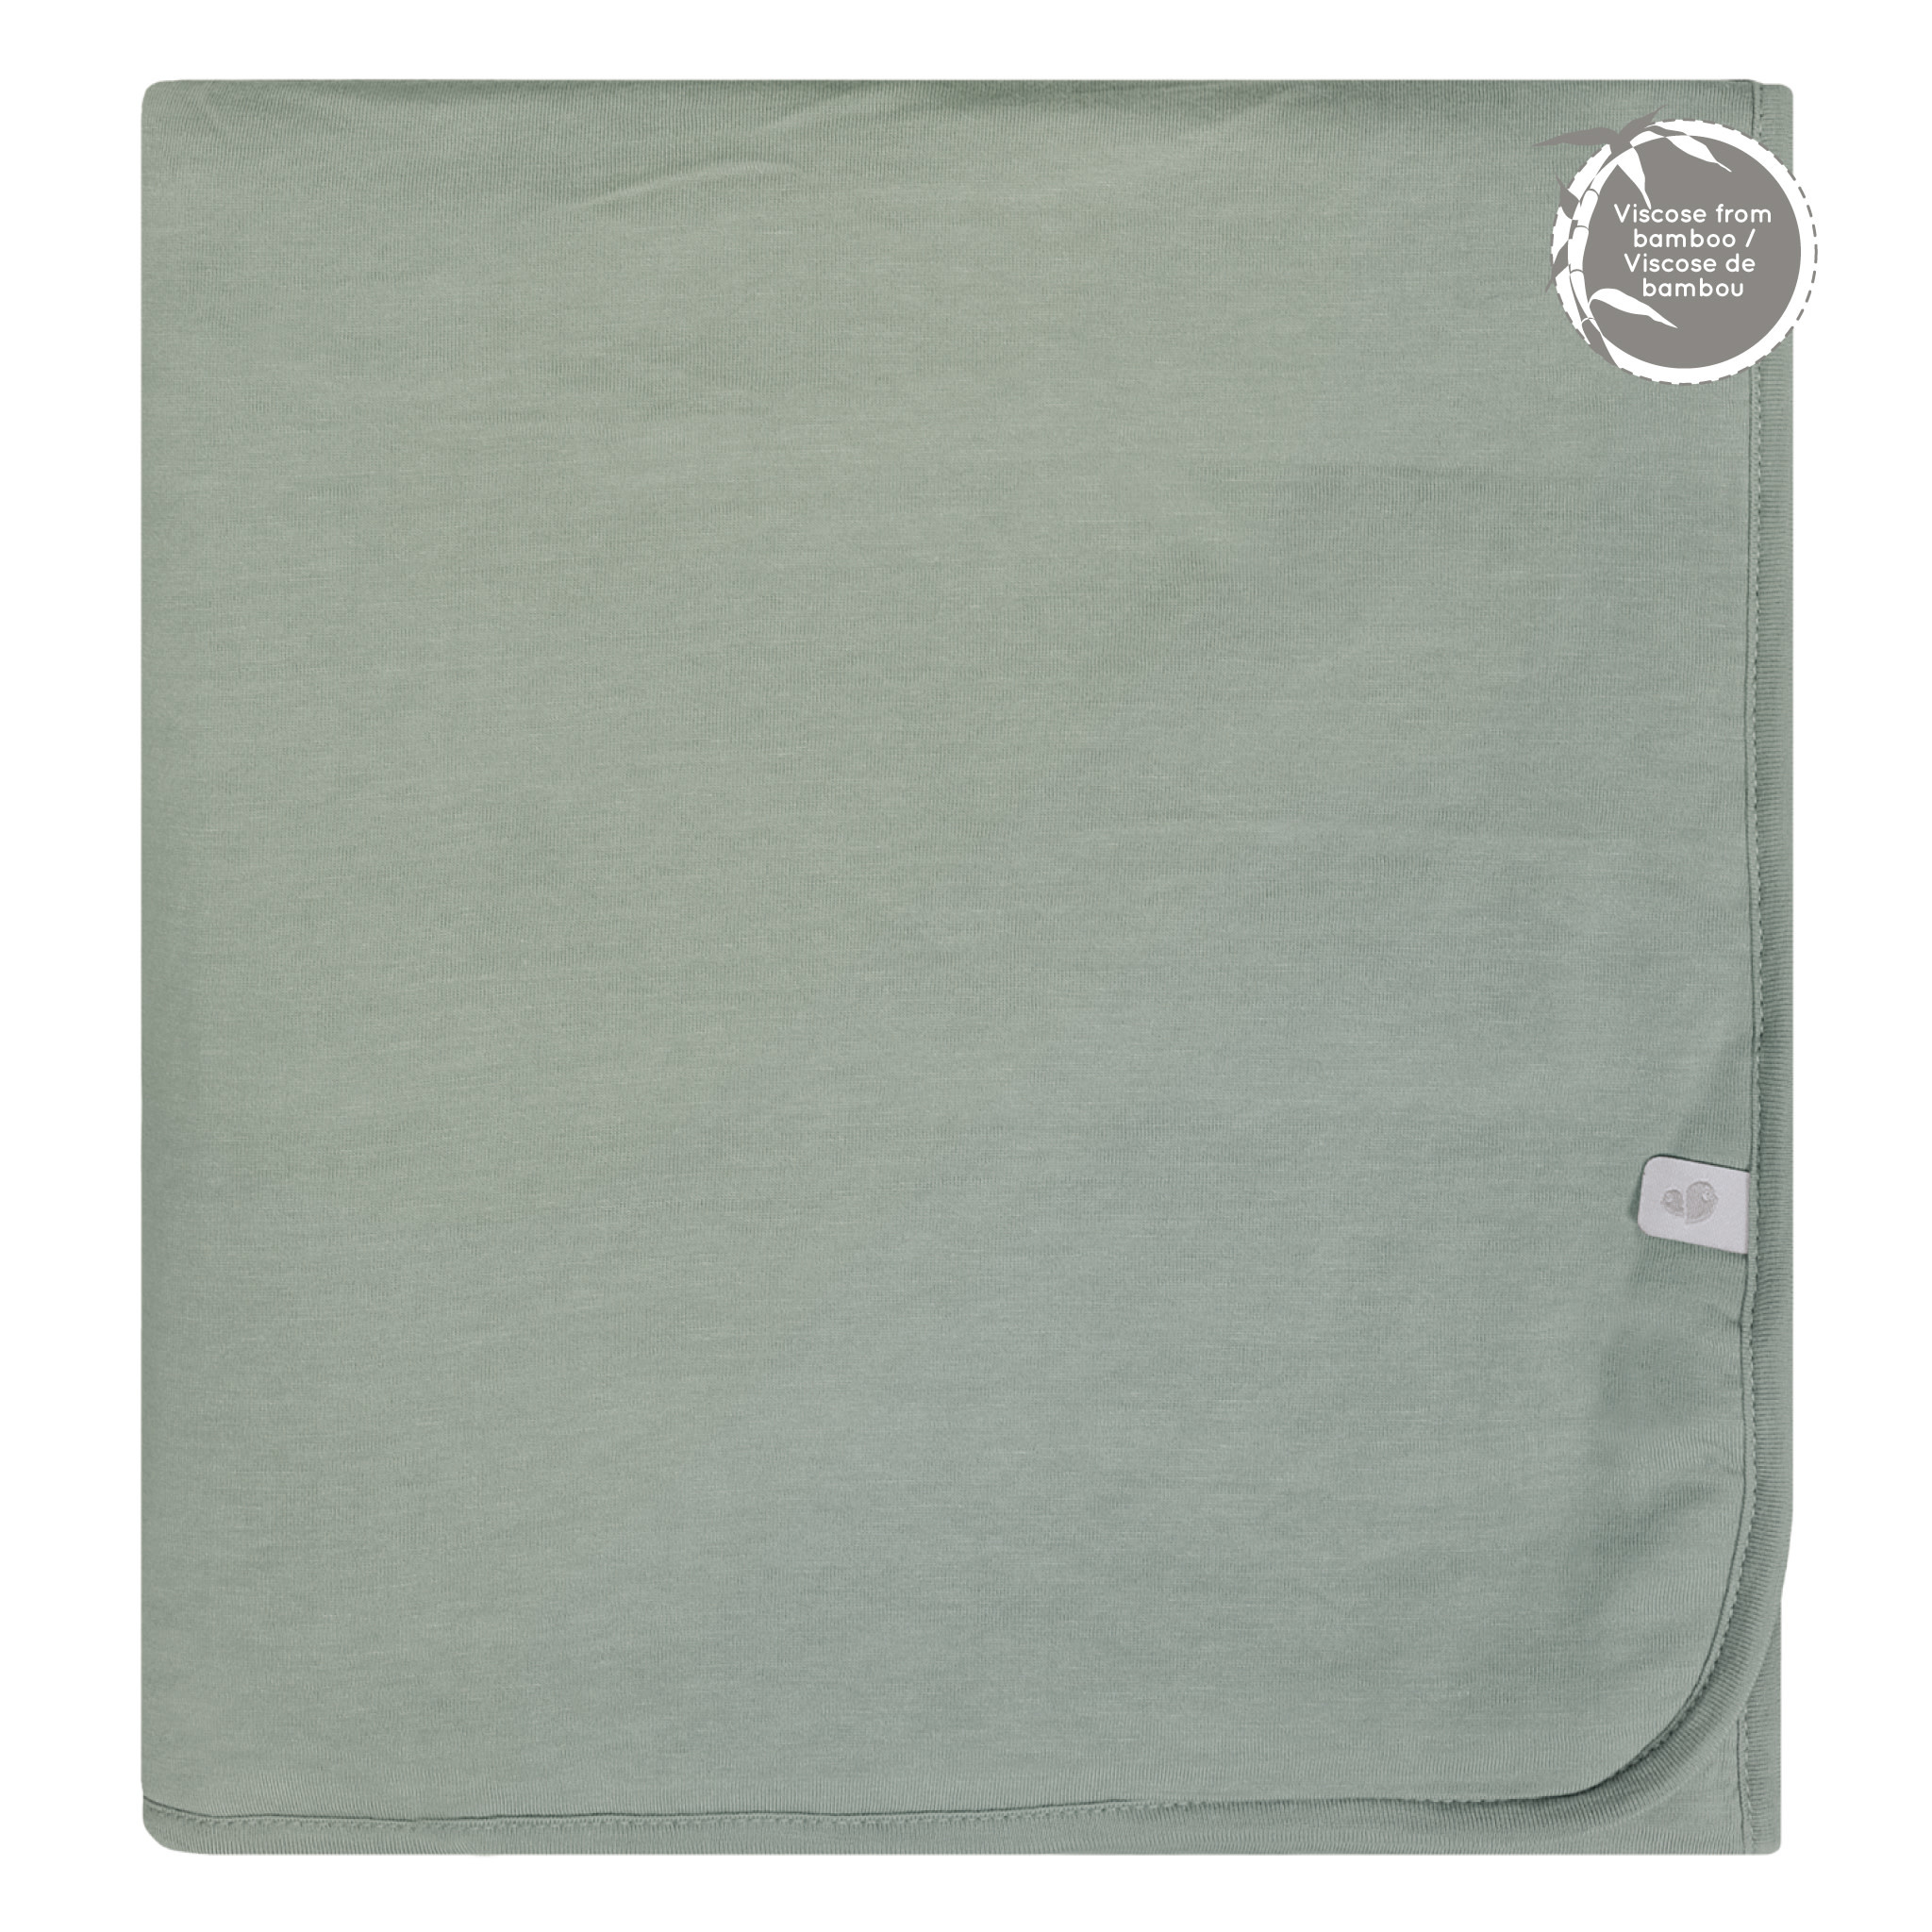 Bamboo Quilted Blanket - Moss Green